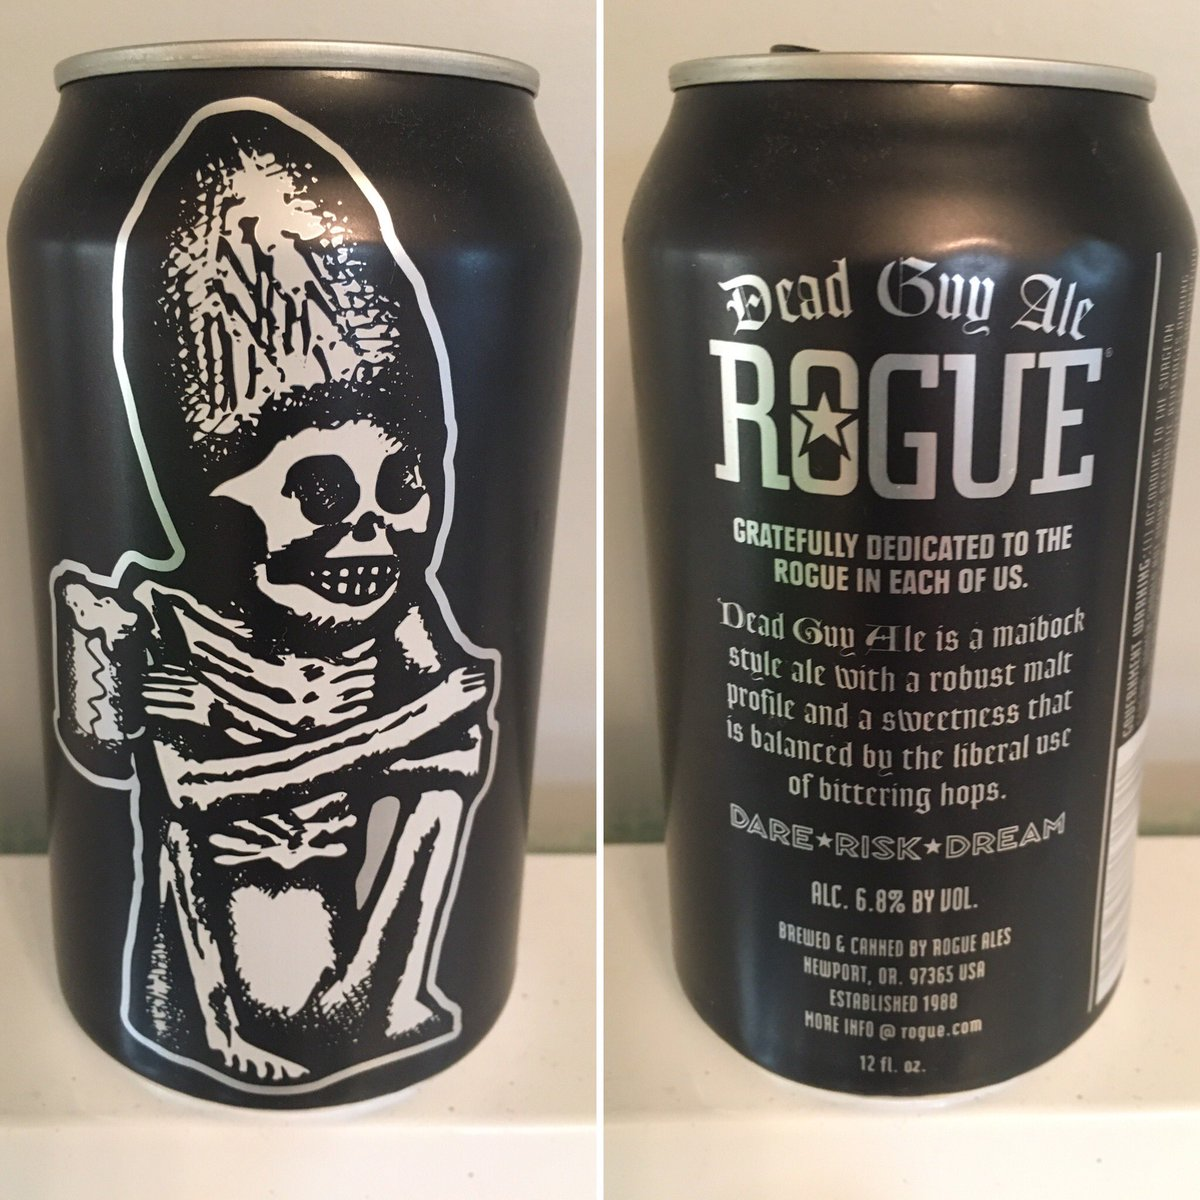 @RogueAles Dead Guy Ale #canmuseum